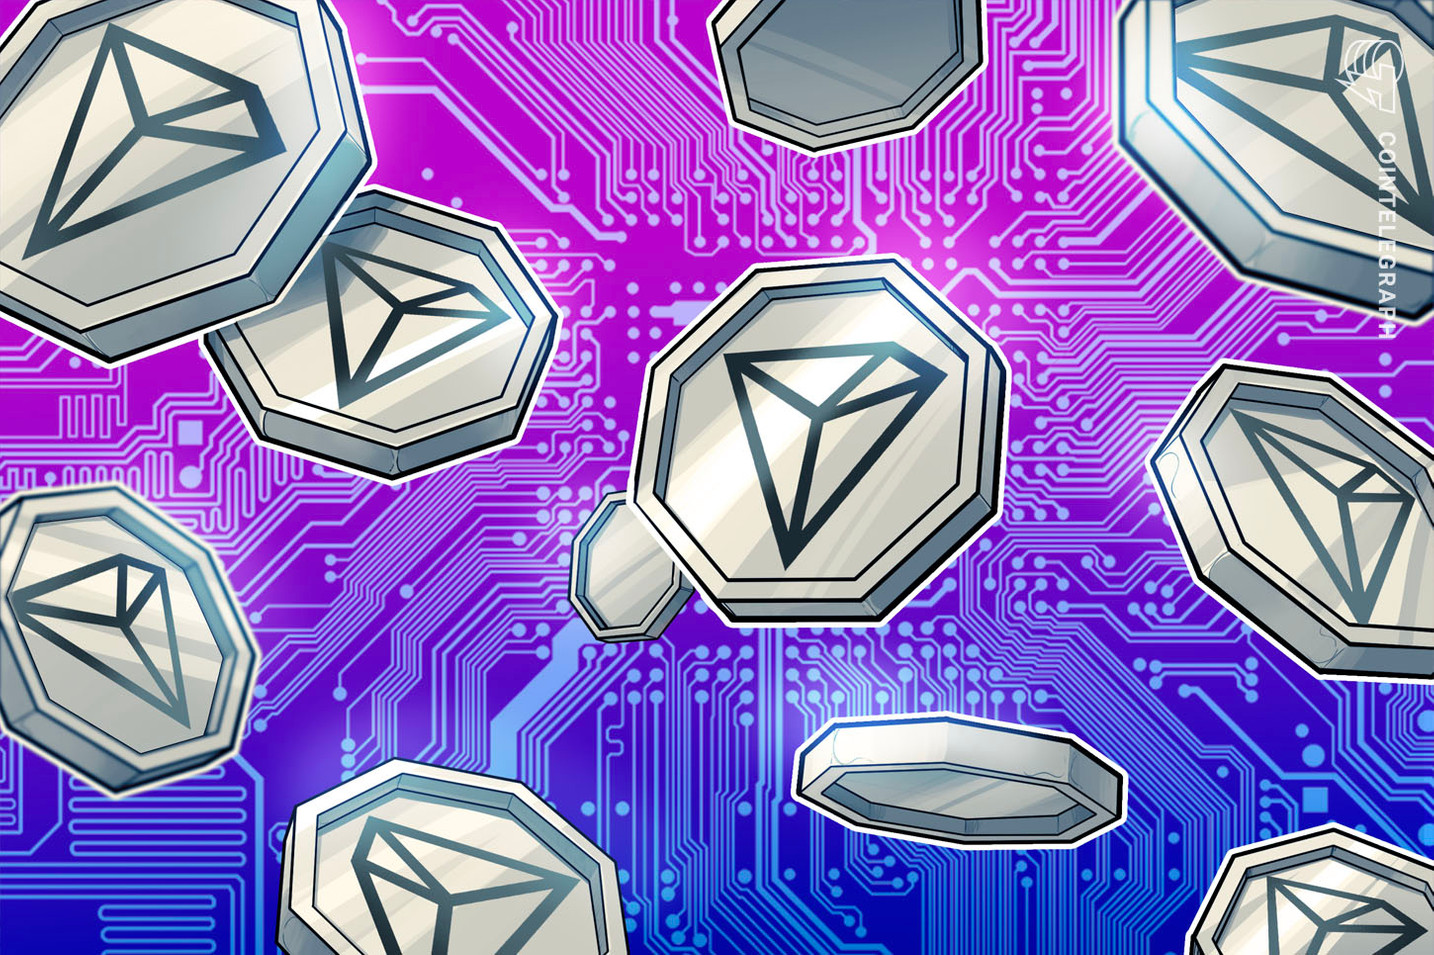 Poloniex Acquires Tron Network's Biggest Non-Custodial Exchange